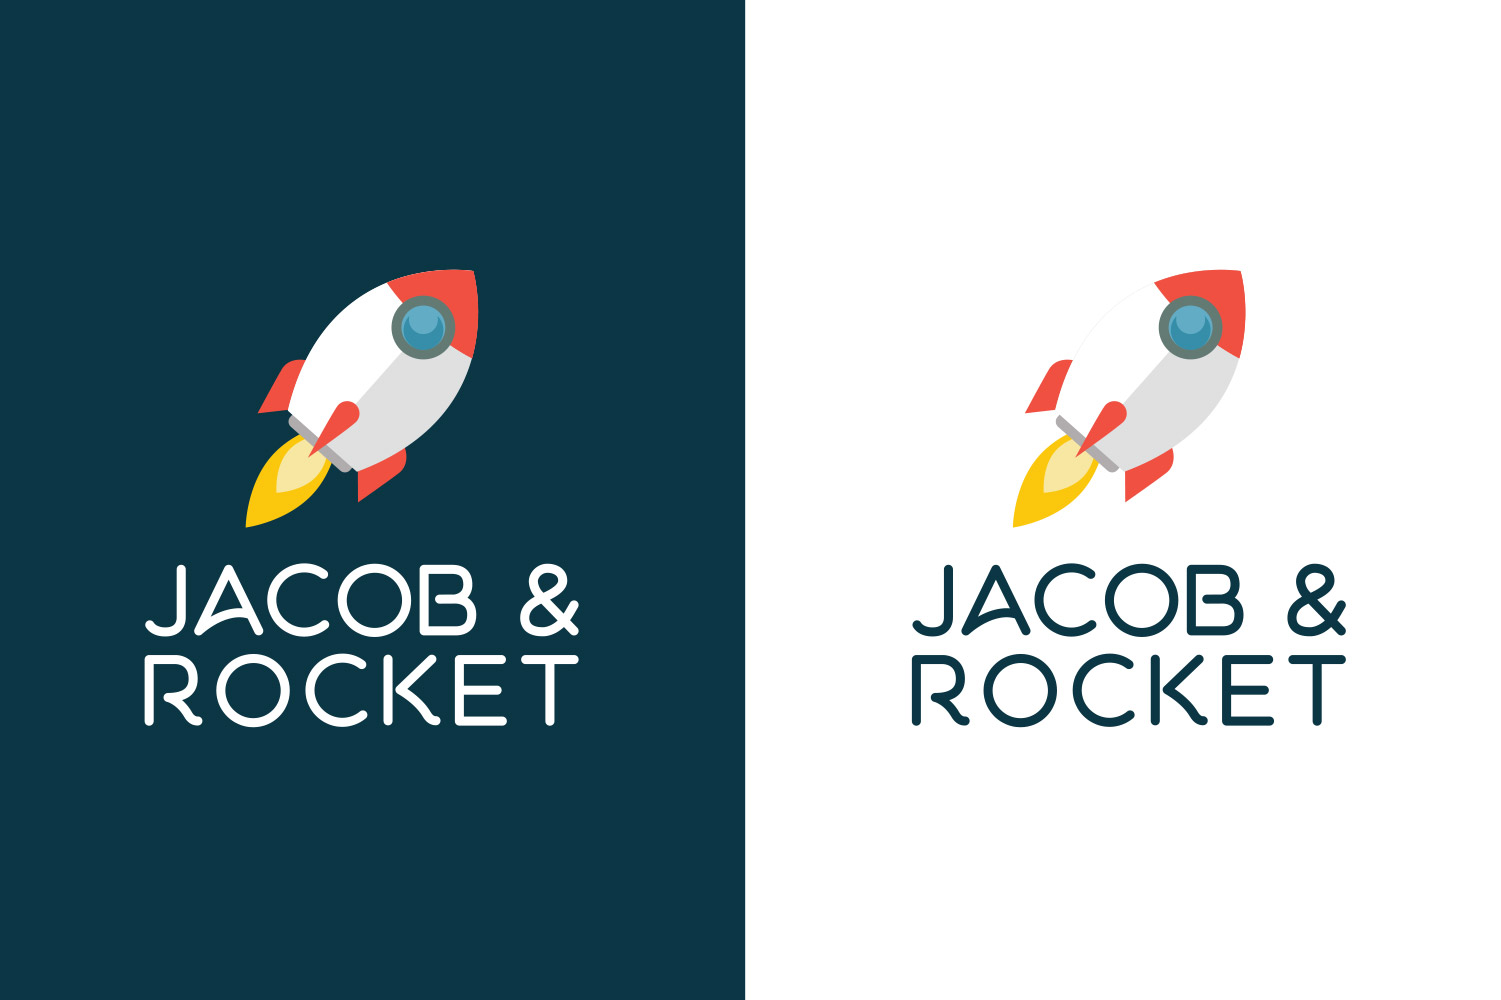 Jacob Rocket, logo design image